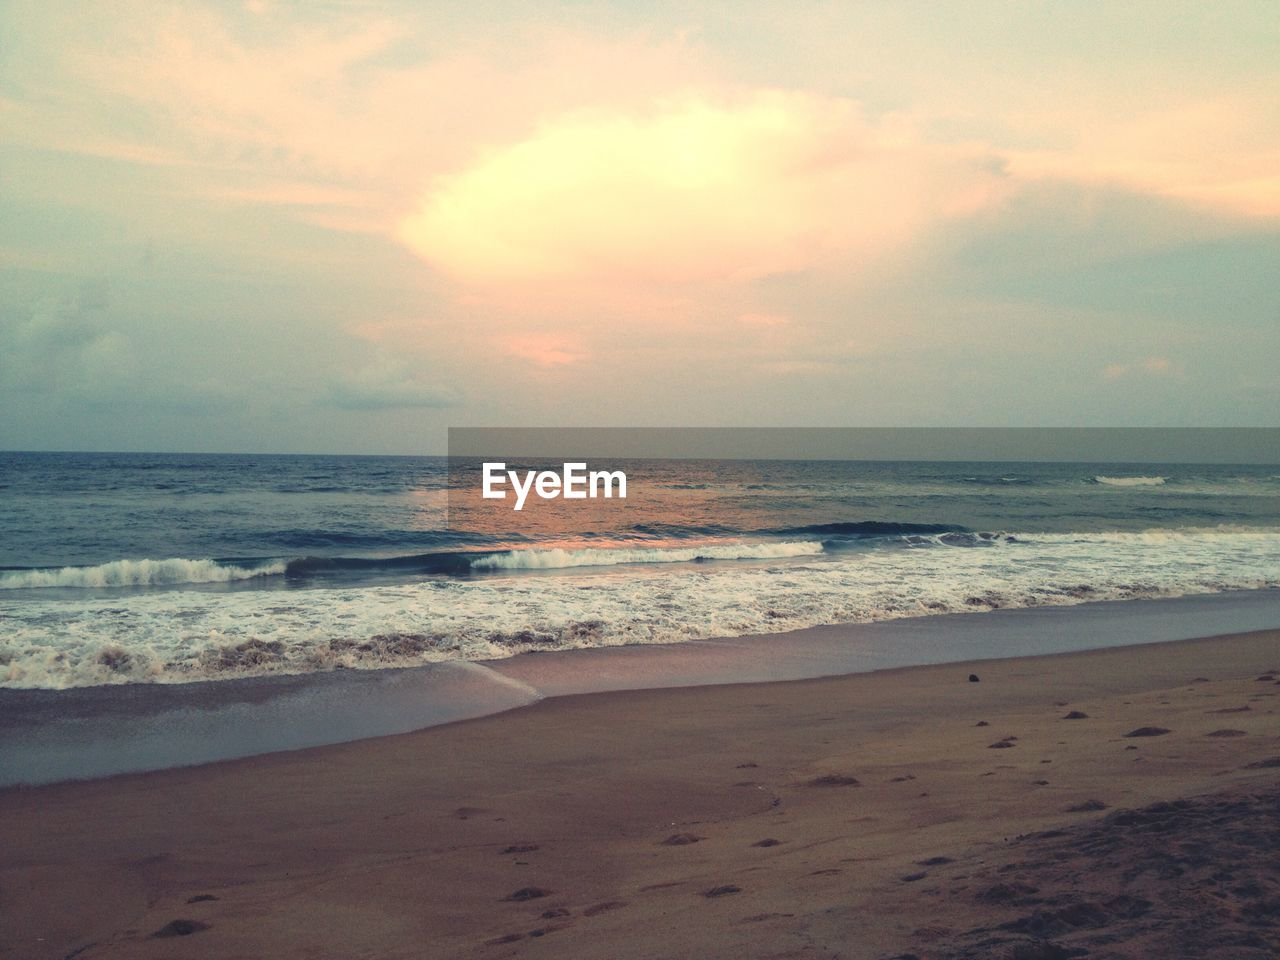 sea, beach, sand, horizon over water, shore, sky, nature, beauty in nature, scenics, water, tranquil scene, sunset, tranquility, wave, no people, summer, outdoors, day